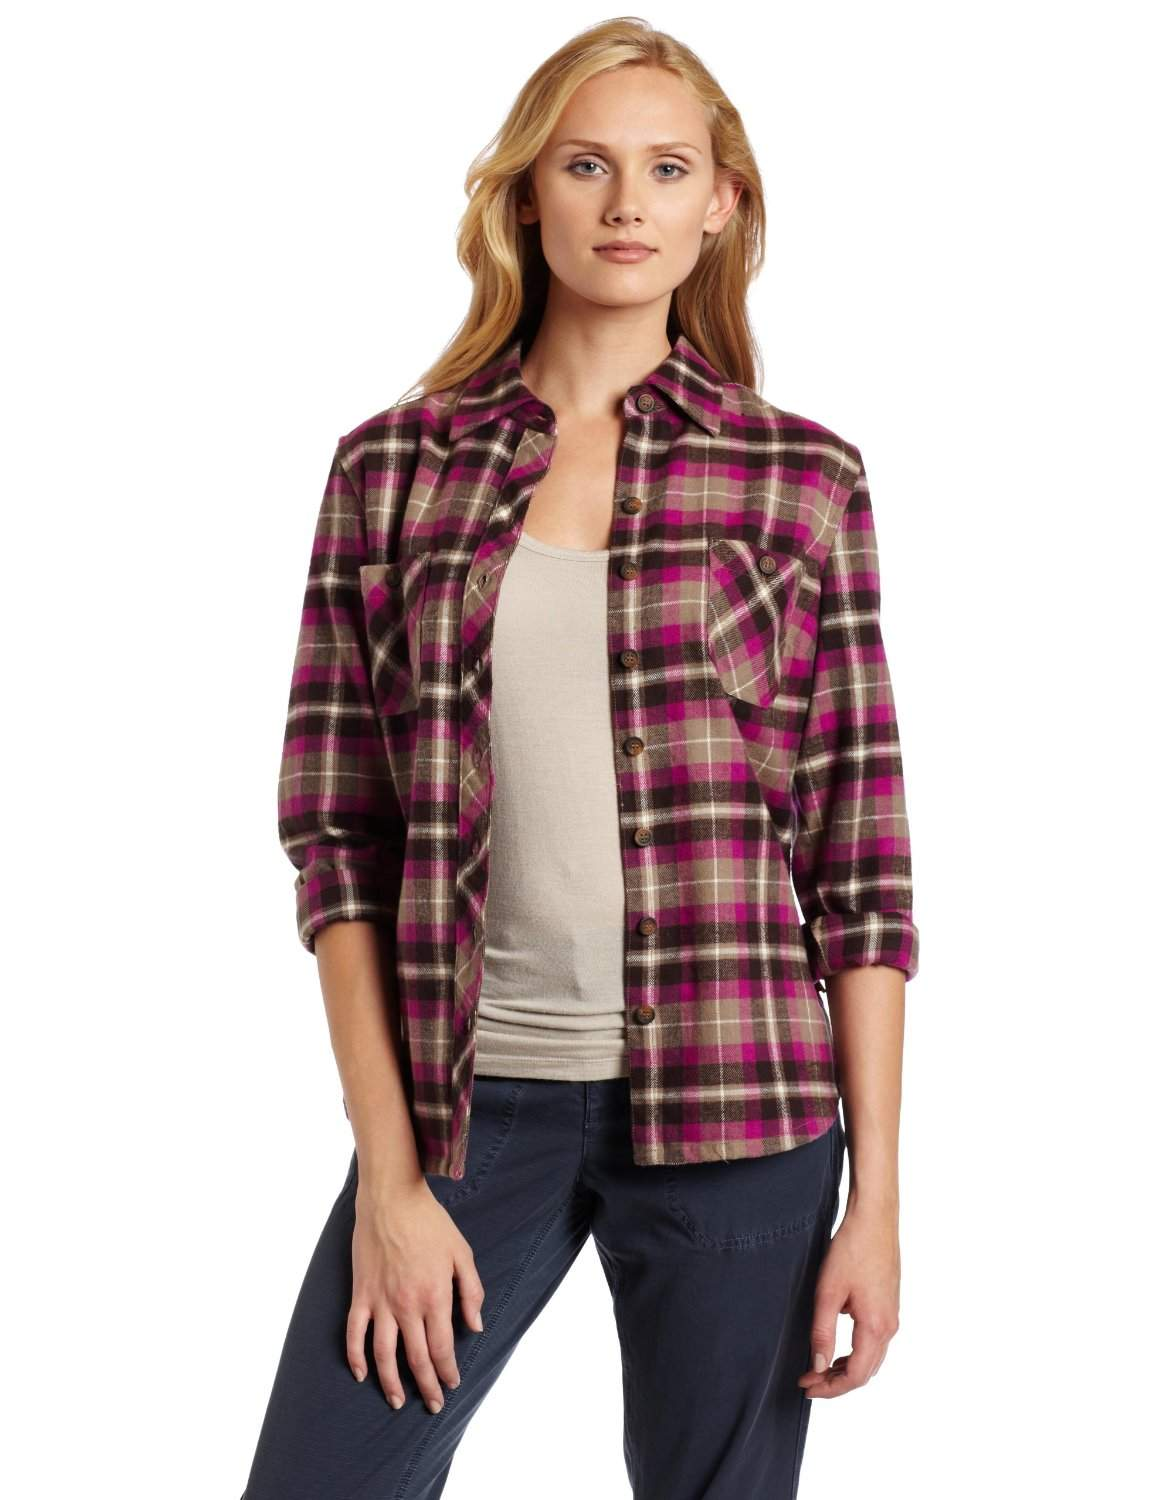 Plaid clothing for women